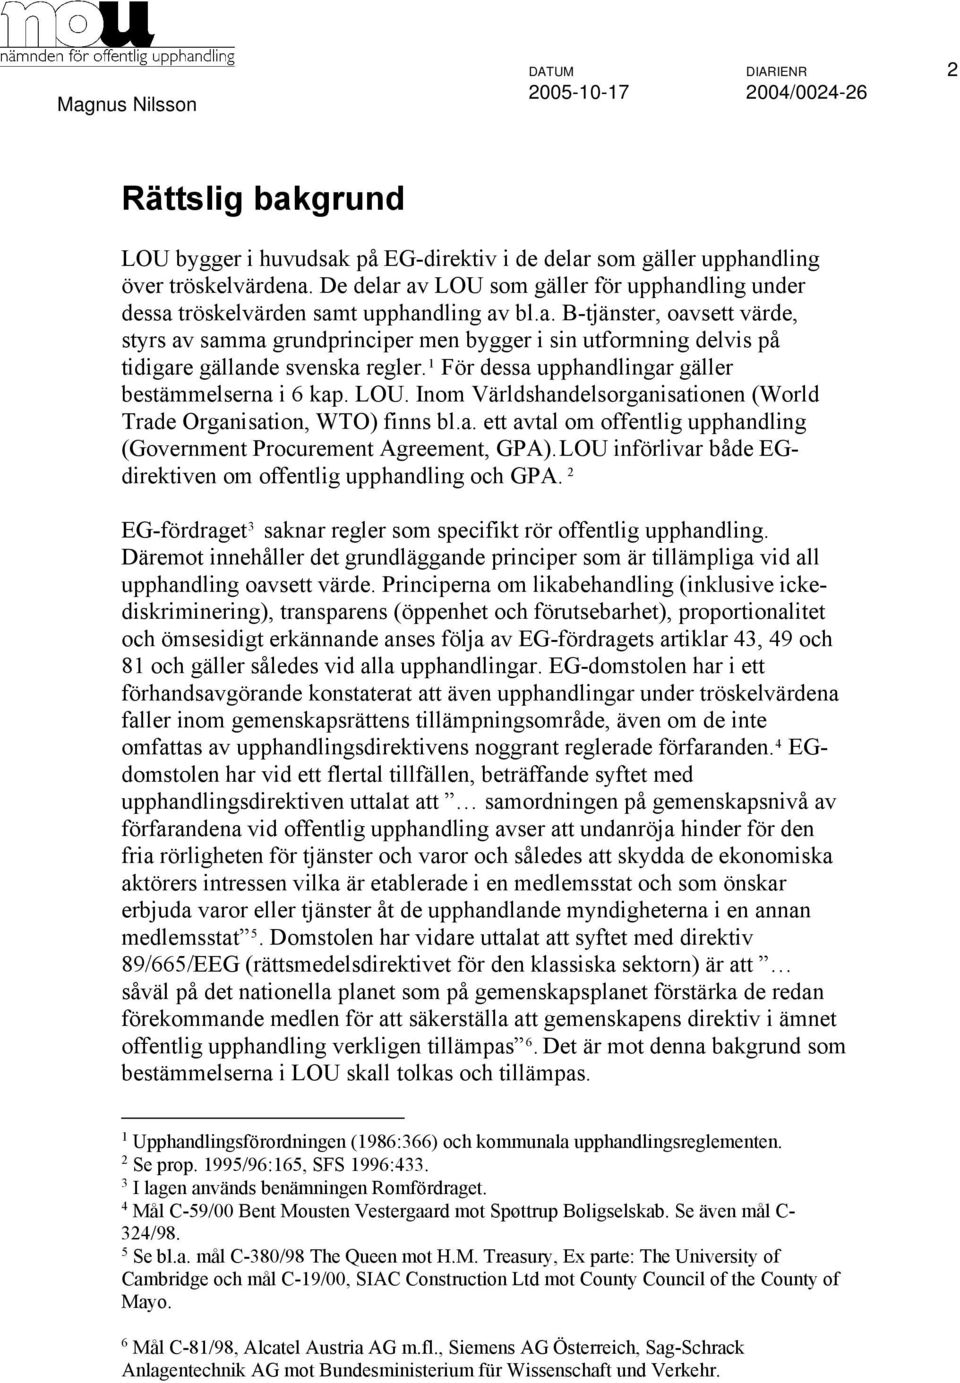 1 För dessa upphandlingar gäller bestämmelserna i 6 kap. LOU. Inom Världshandelsorganisationen (World Trade Organisation, WTO) finns bl.a. ett avtal om offentlig upphandling (Government Procurement Agreement, GPA).